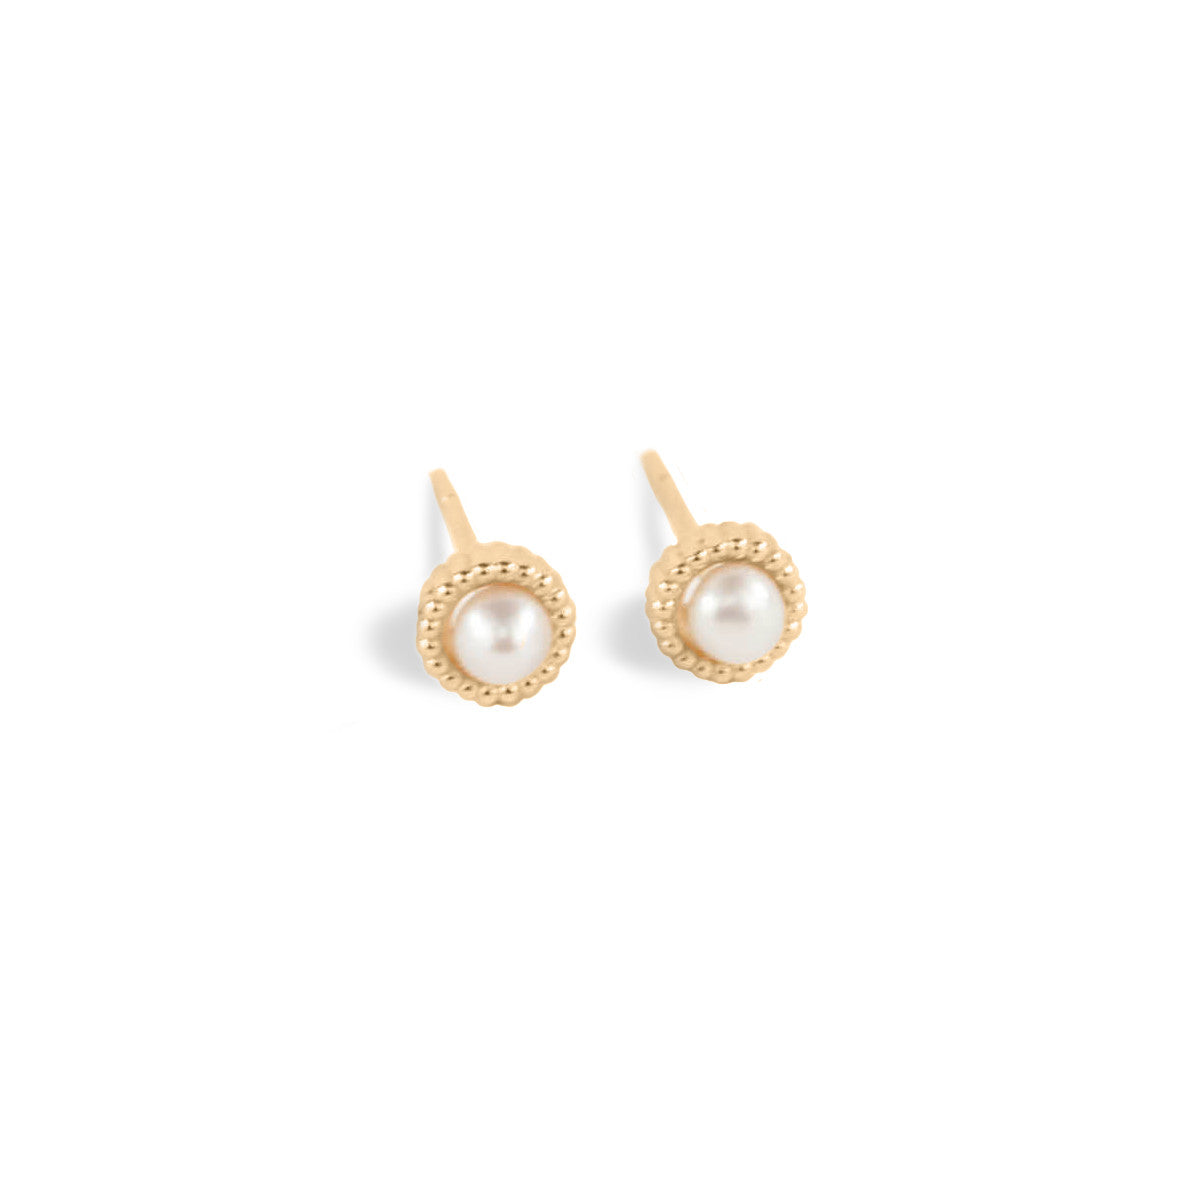 surface la single products belljar earrings pearl